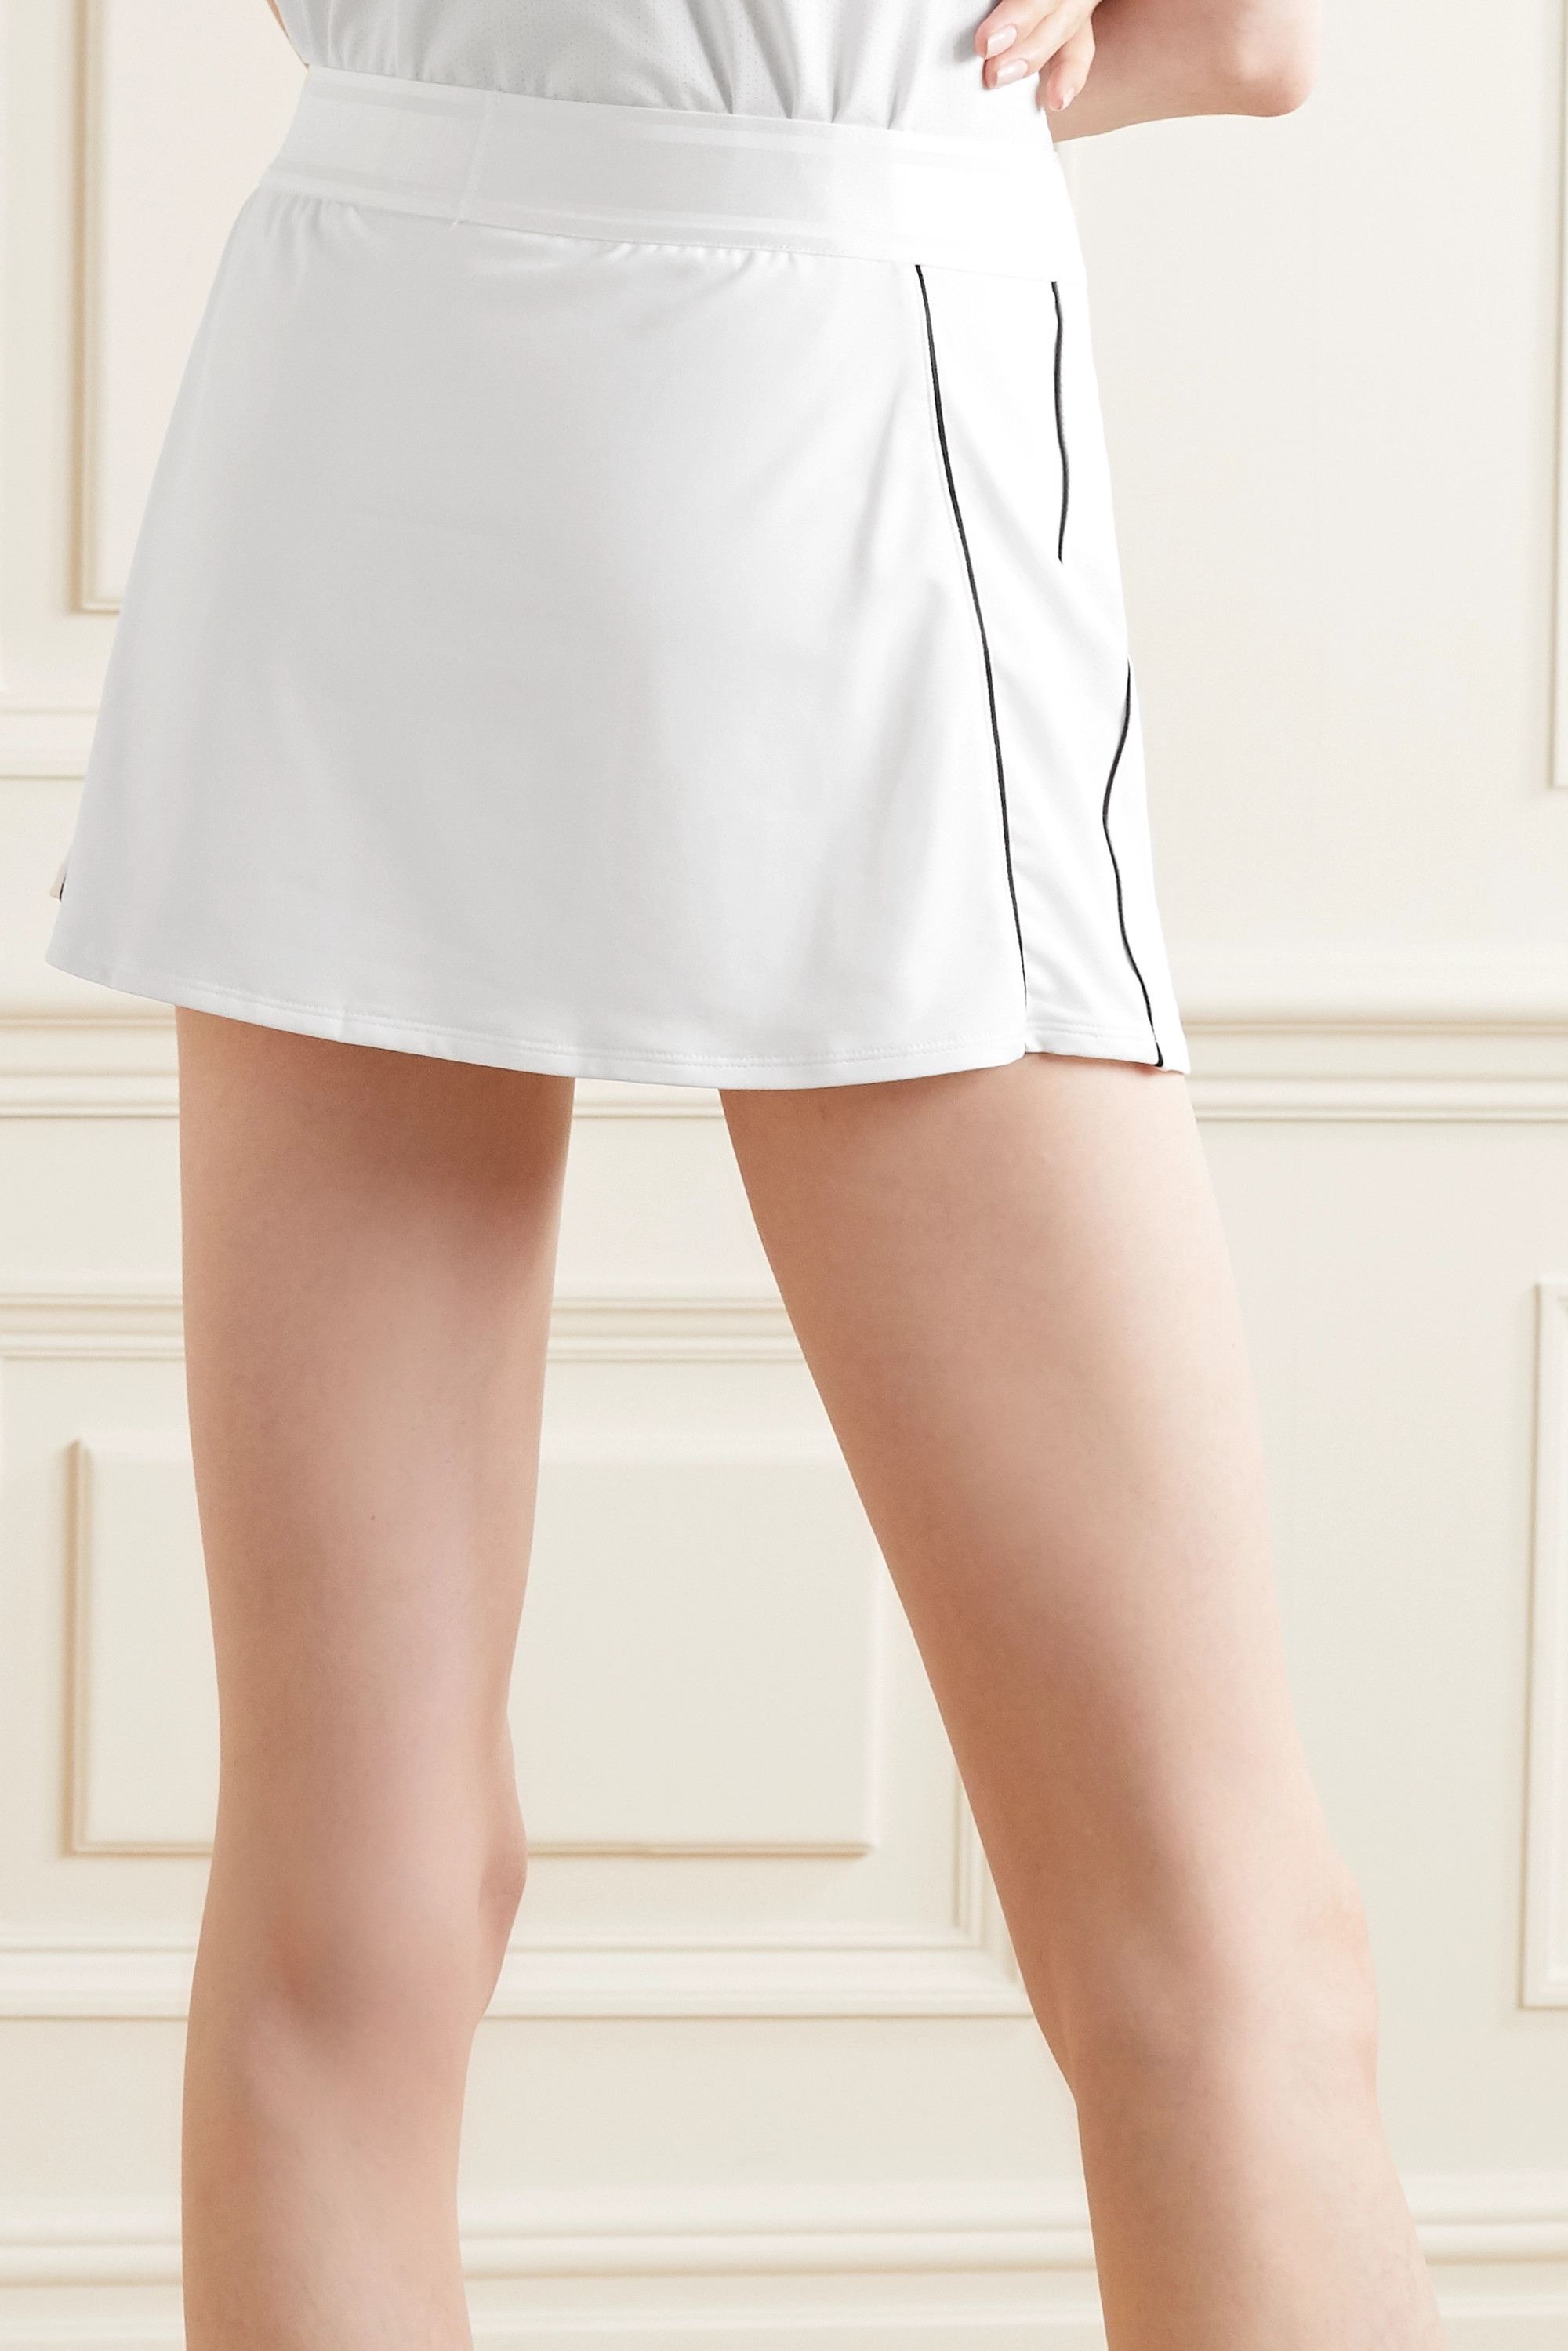 Nike Court Dri-FIT skirt